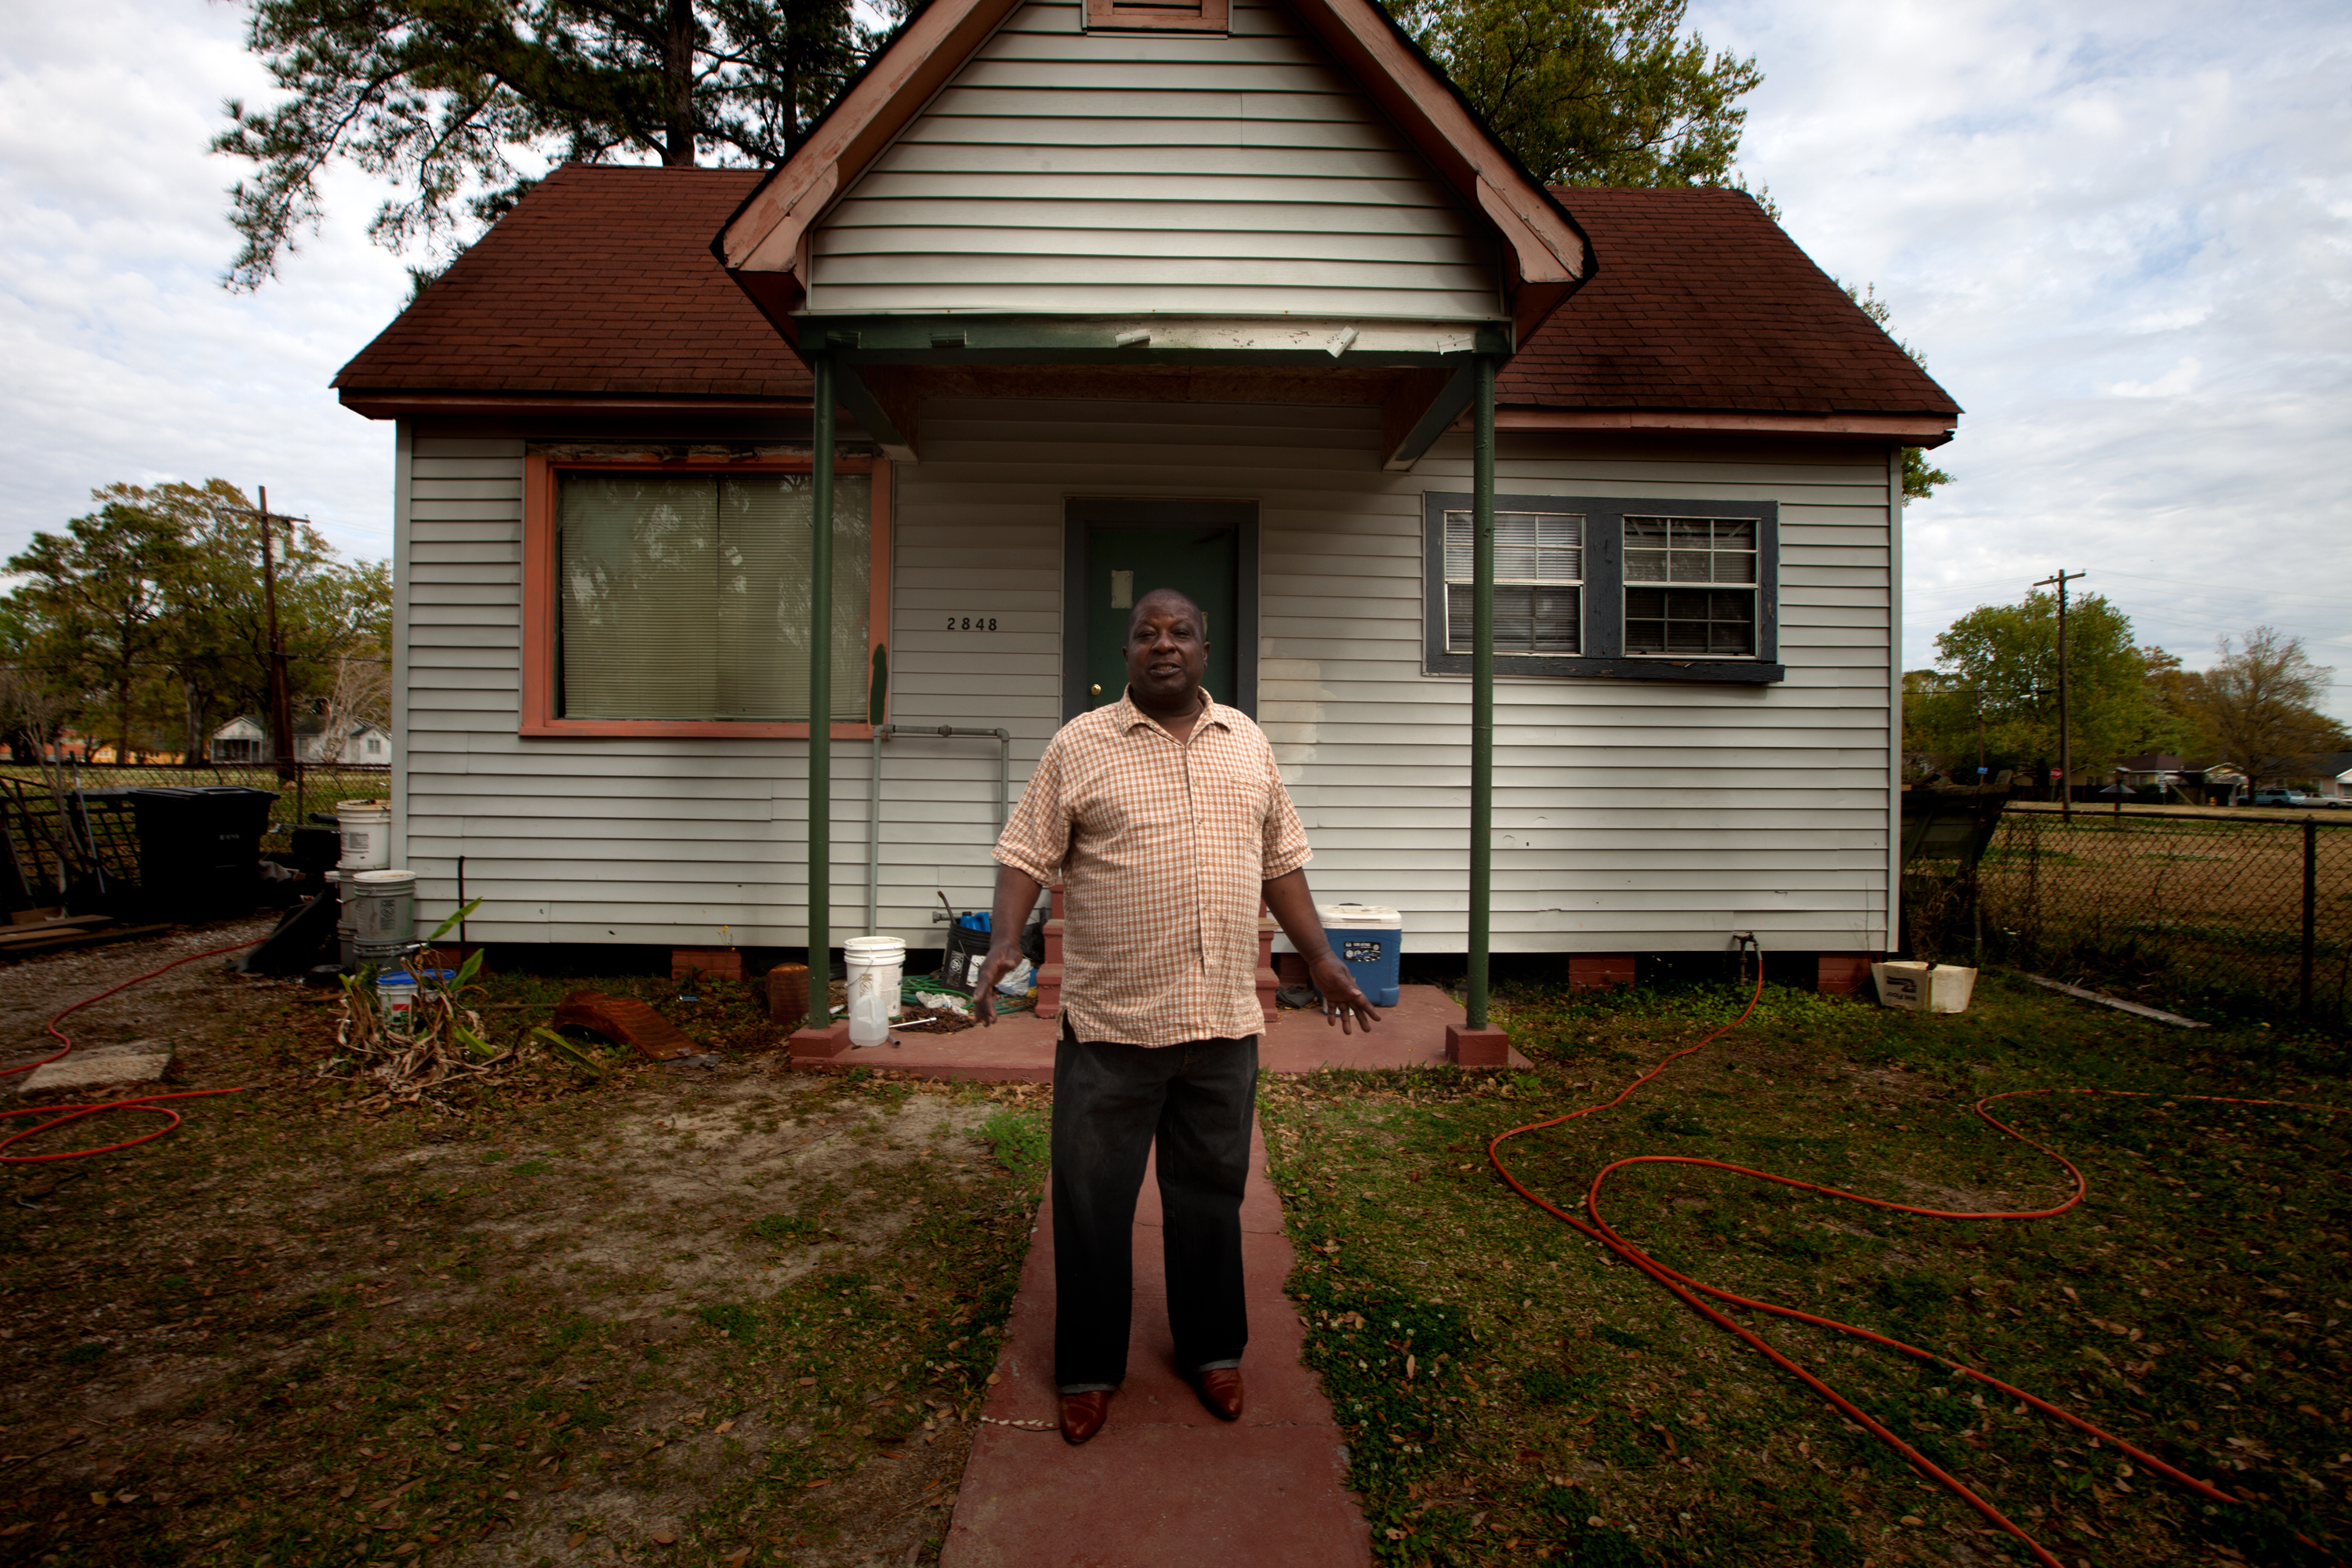 Larry Alexander lives a few hundred yards from Exxon Mobil. Many of the lots around his house are vacant because Exxon bought out his neighbors over the years.